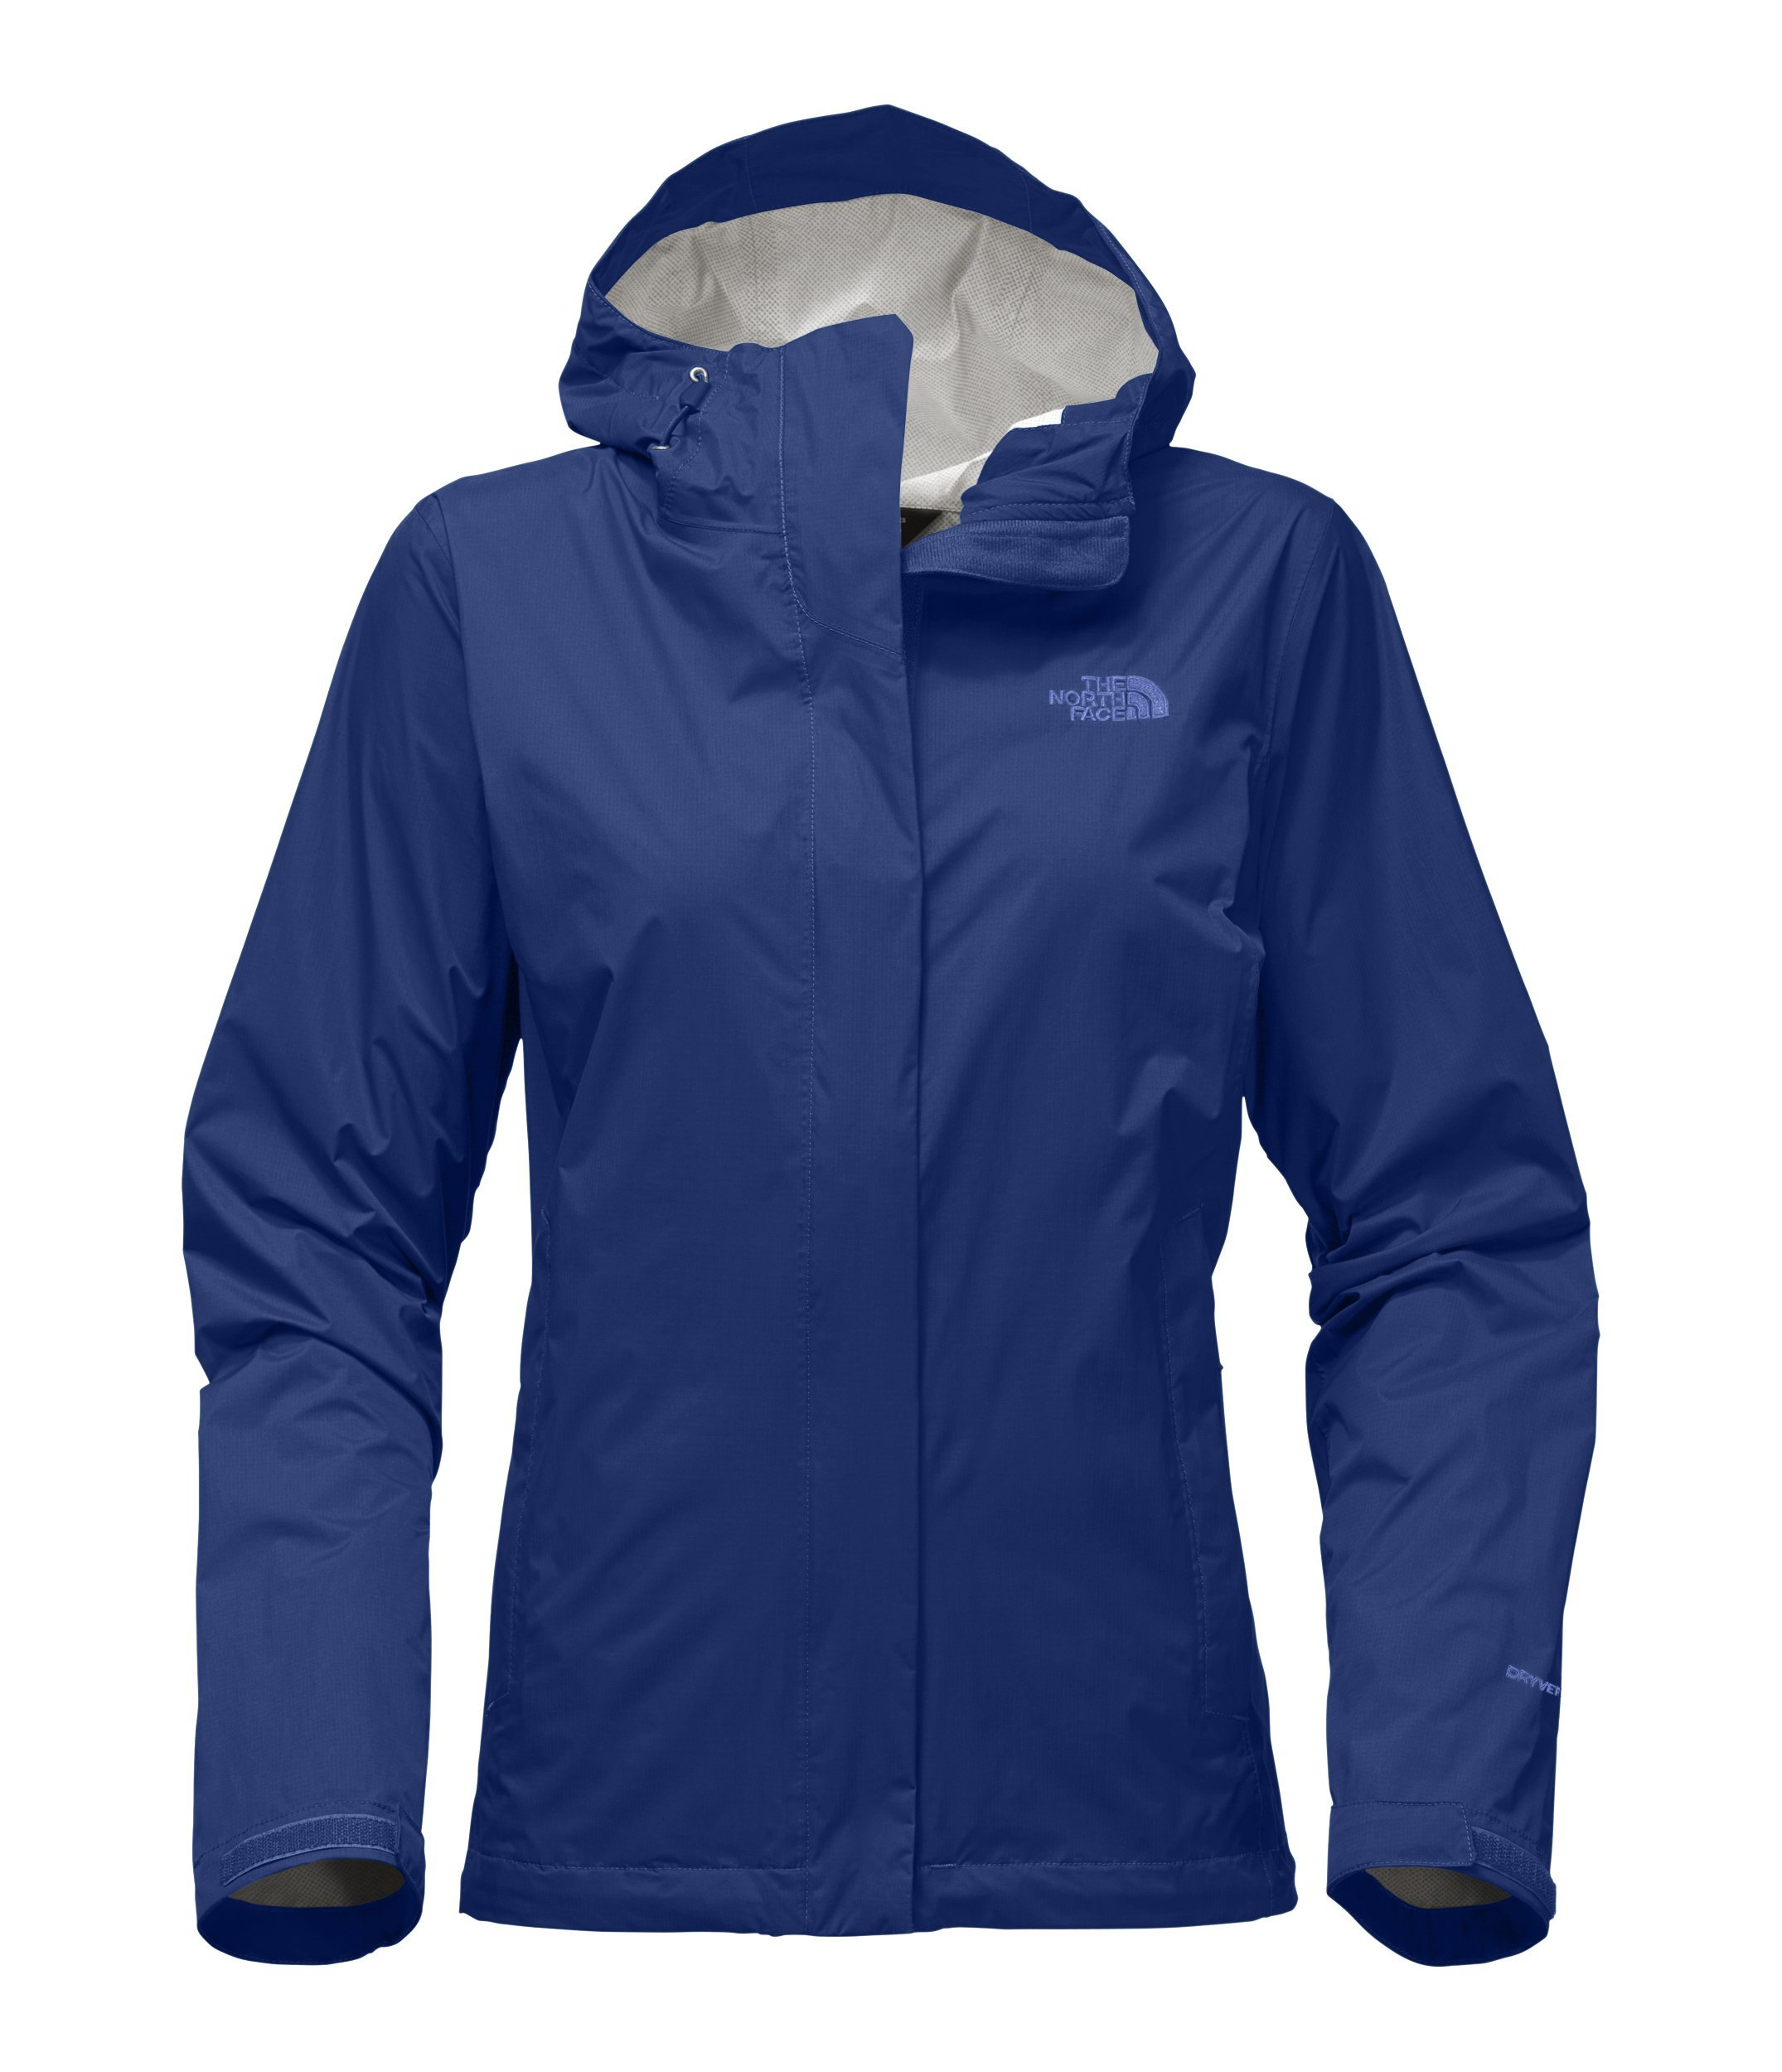 The North Face Women's Venture 2 Jacket Soda Lite Blue - XXL